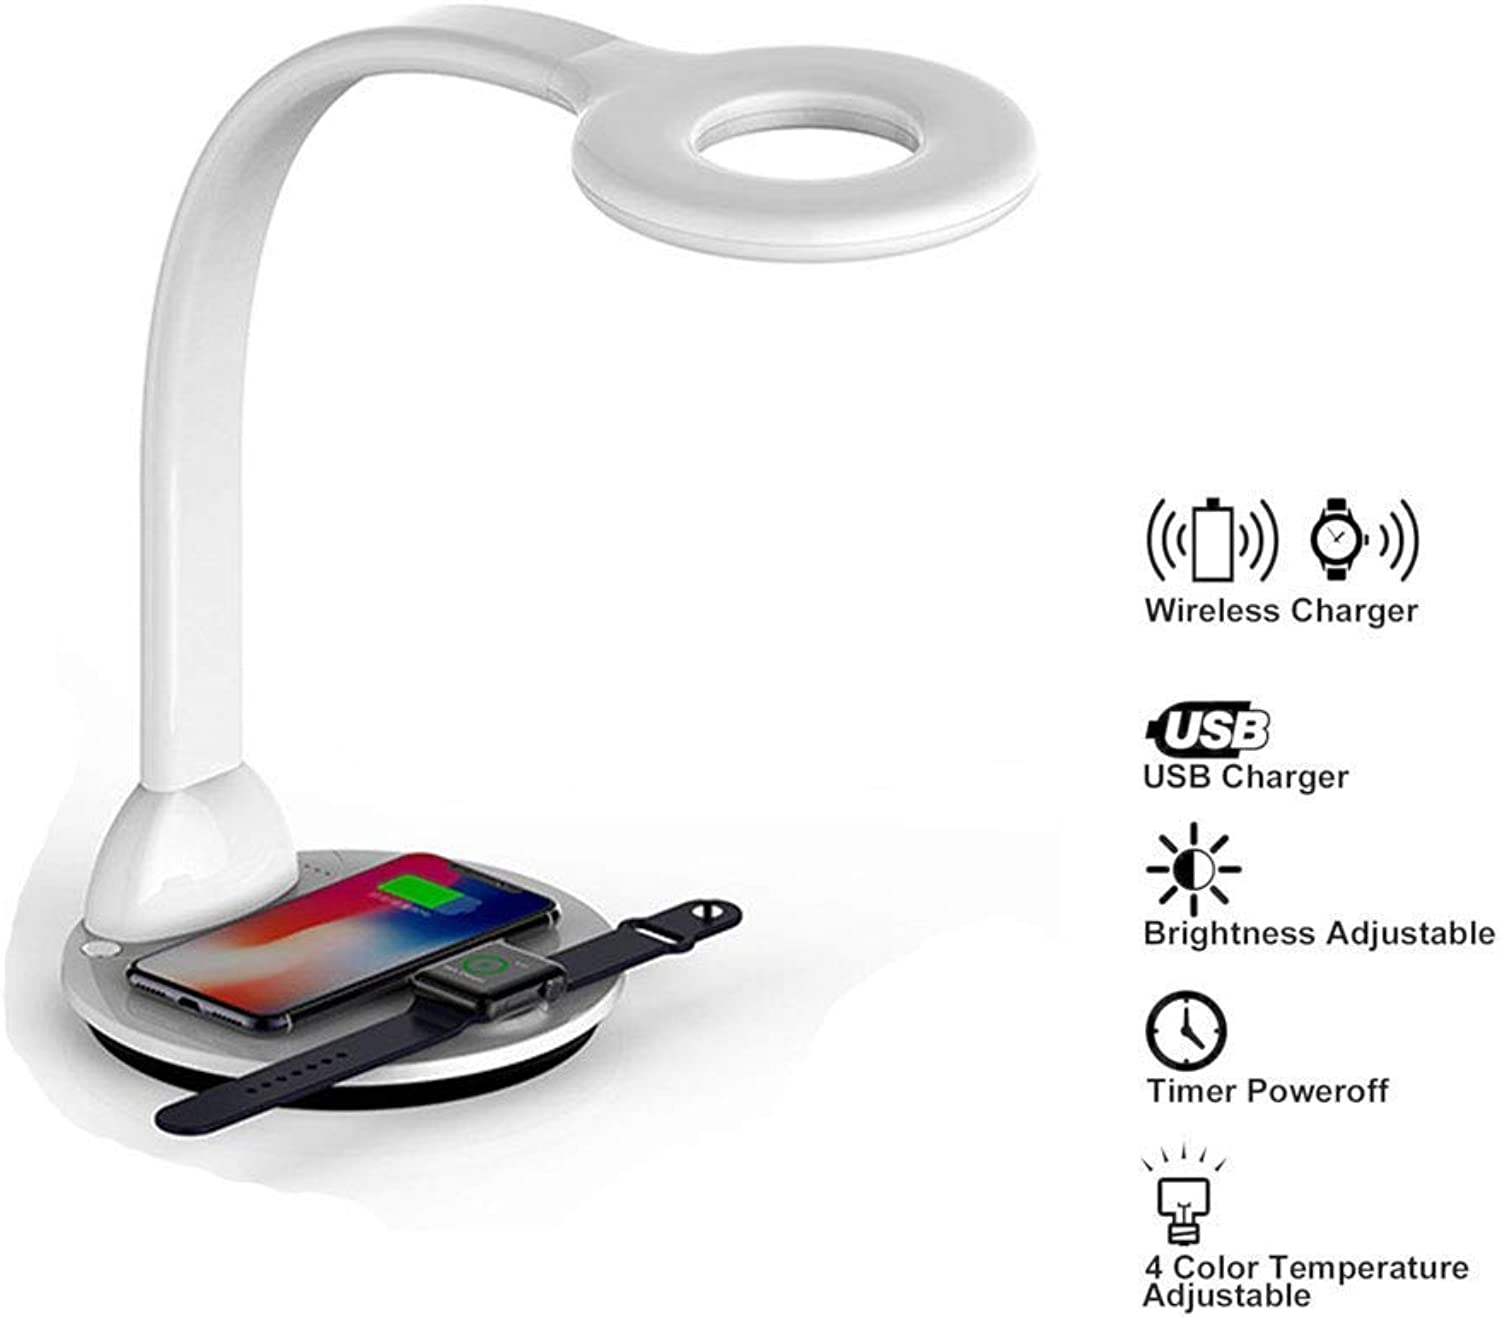 DTVX Tischlampe drahtlose Ladeleichte LED American Bedside Lampe, 10W Wireless LED Fast Charger, Blautooth 4.2 Touch-Sensor-Dimming, geeignet für iPhone Watch,Weiß